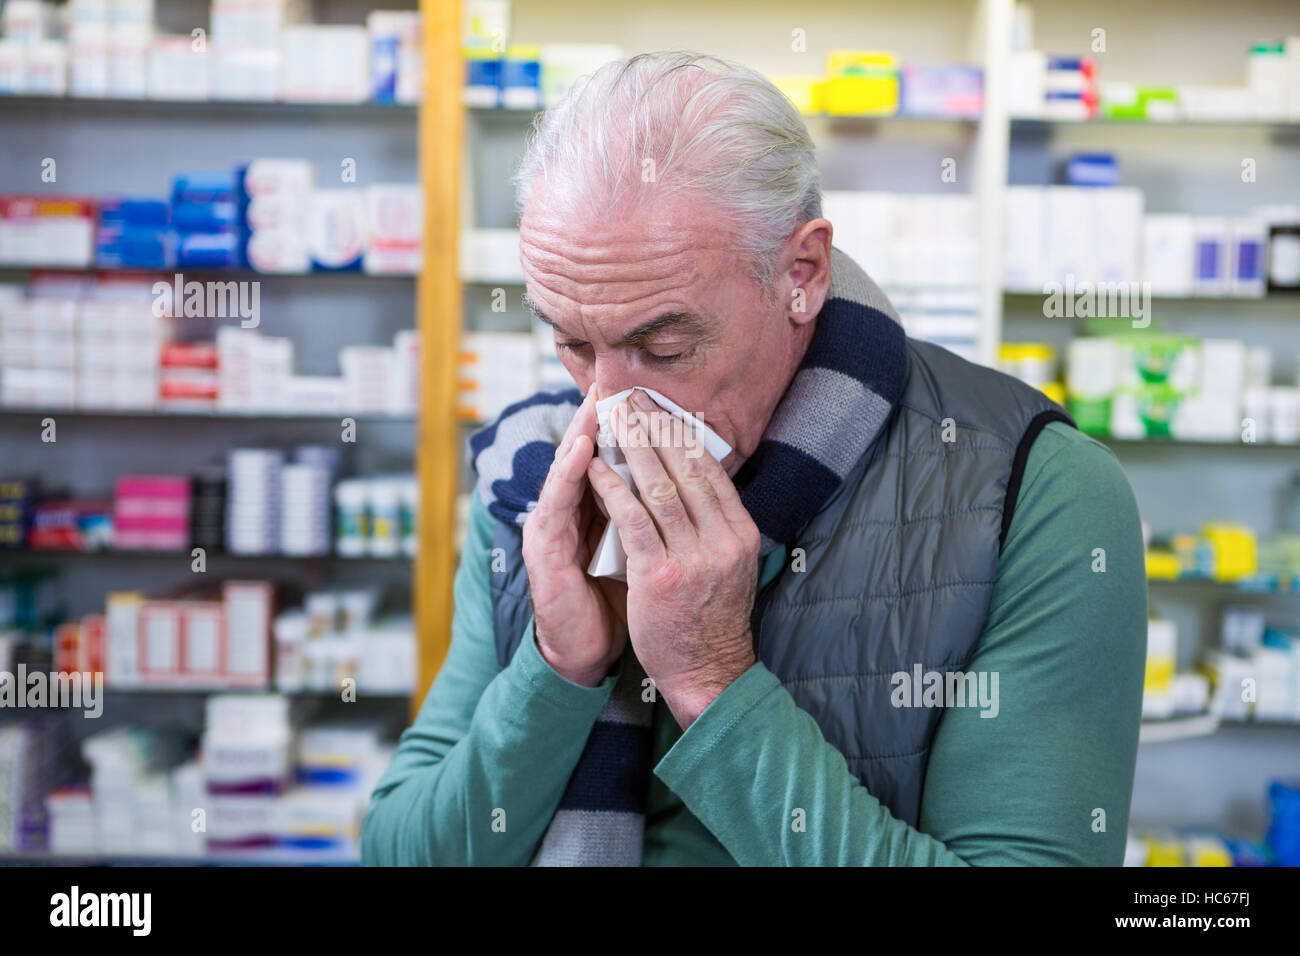 Customer covering his nose with handkerchief while sneezing - Stock Image